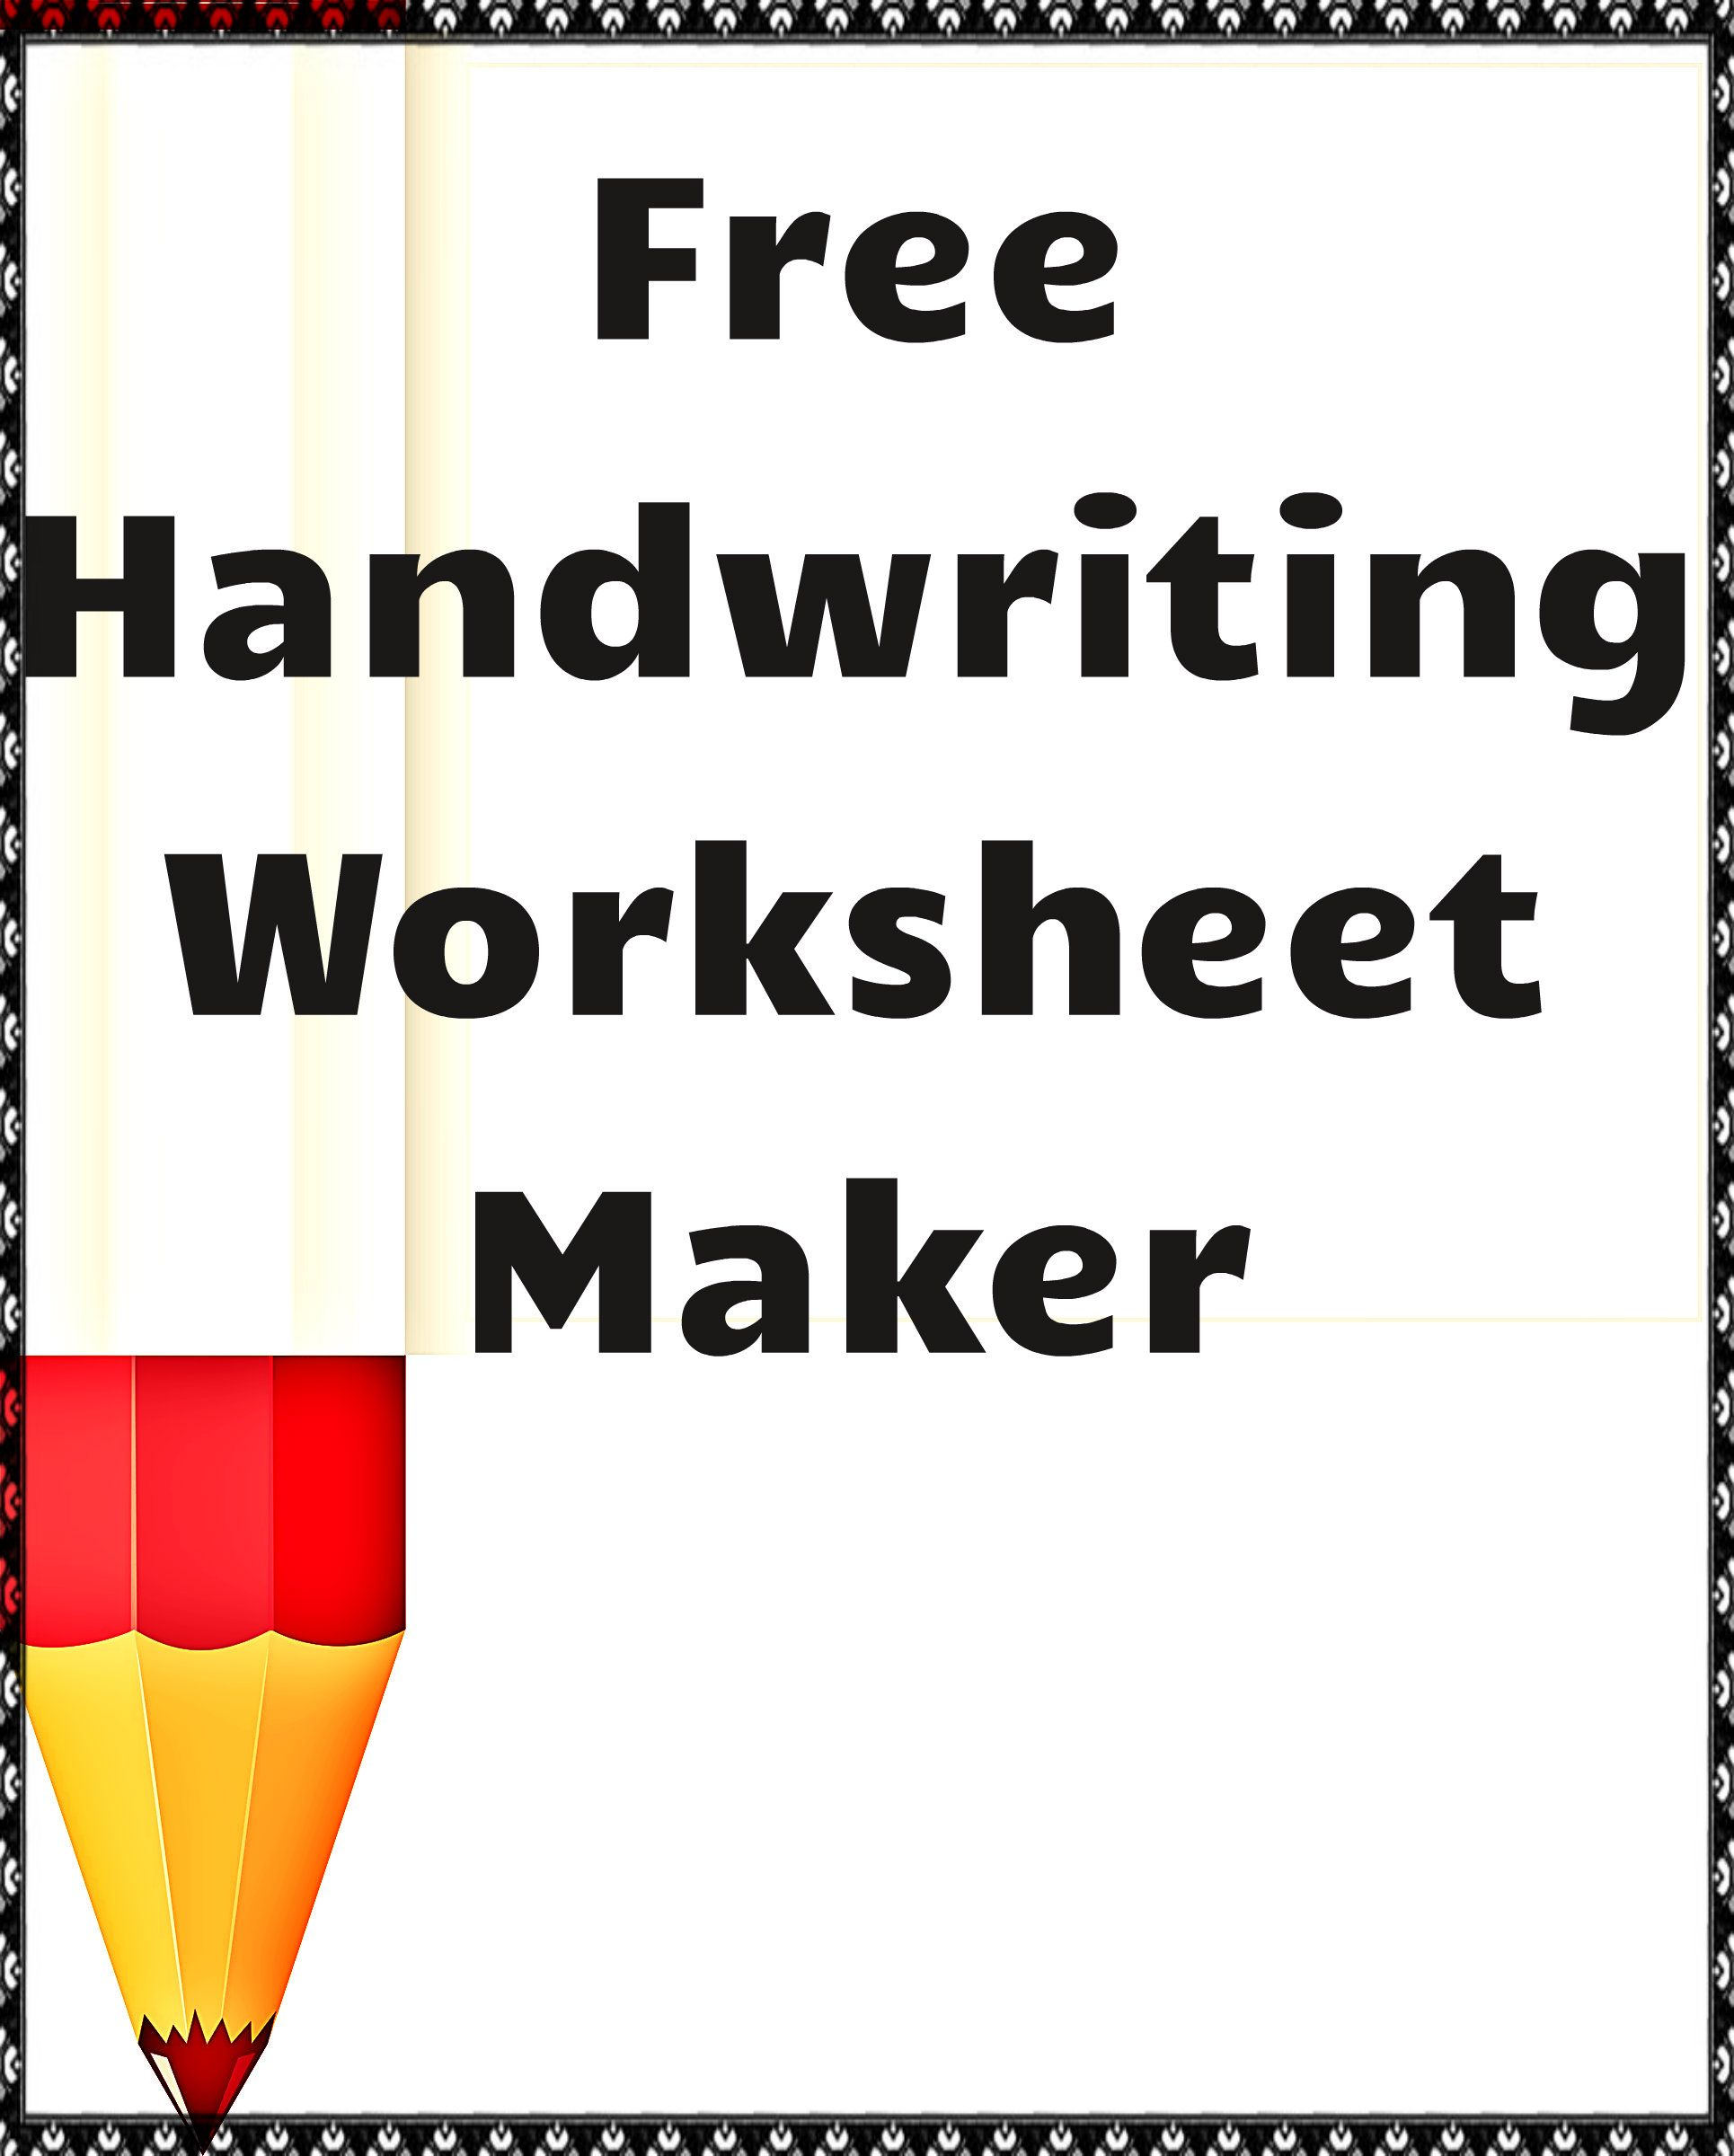 1000+ images about Handwriting practice on Pinterest | Handwriting ...